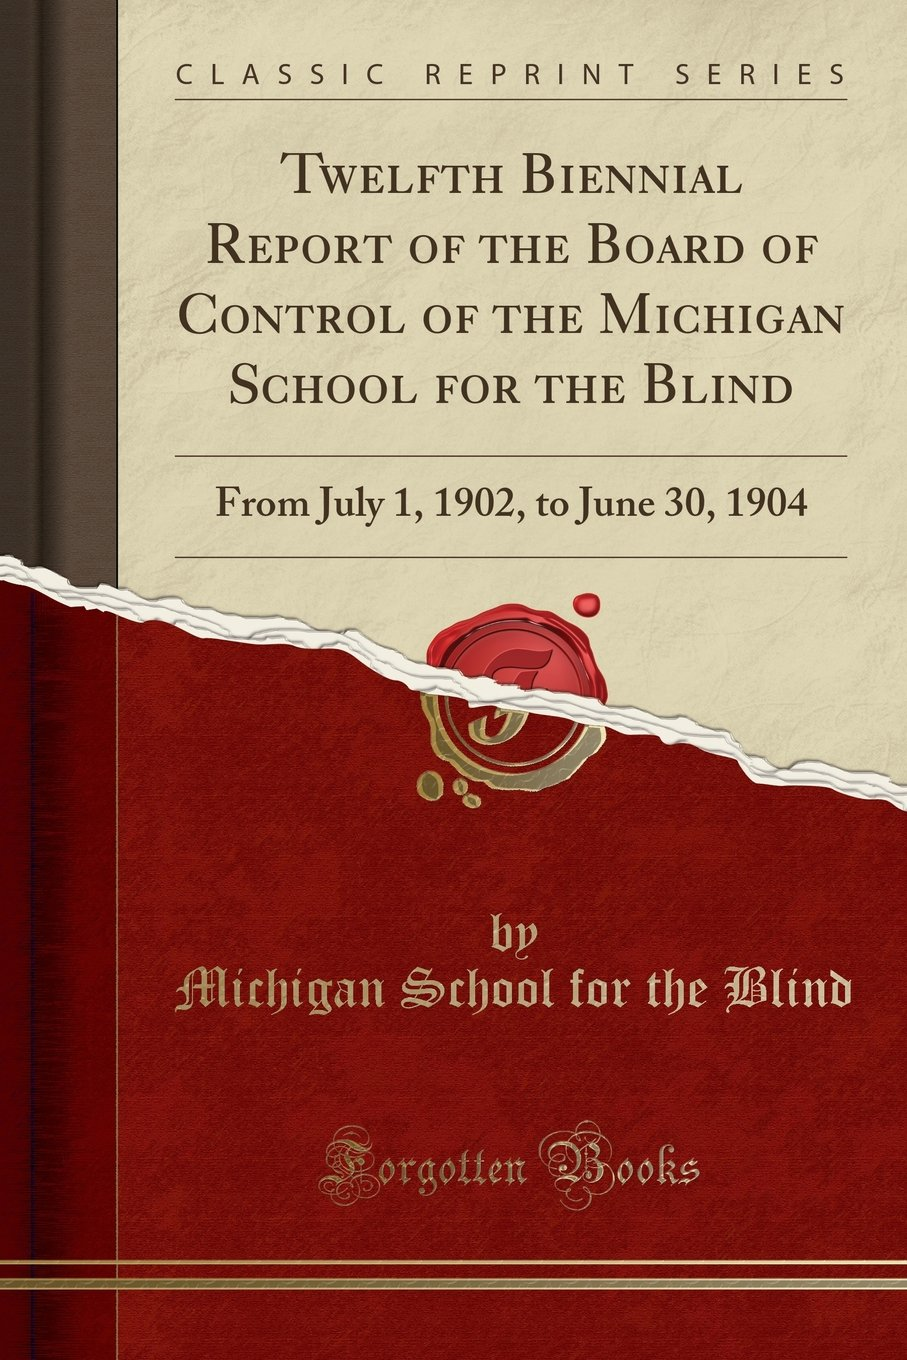 Twelfth Biennial Report of the Board of Control of the Michigan School for the Blind: From July 1, 1902, to June 30, 1904 (Classic Reprint) ebook